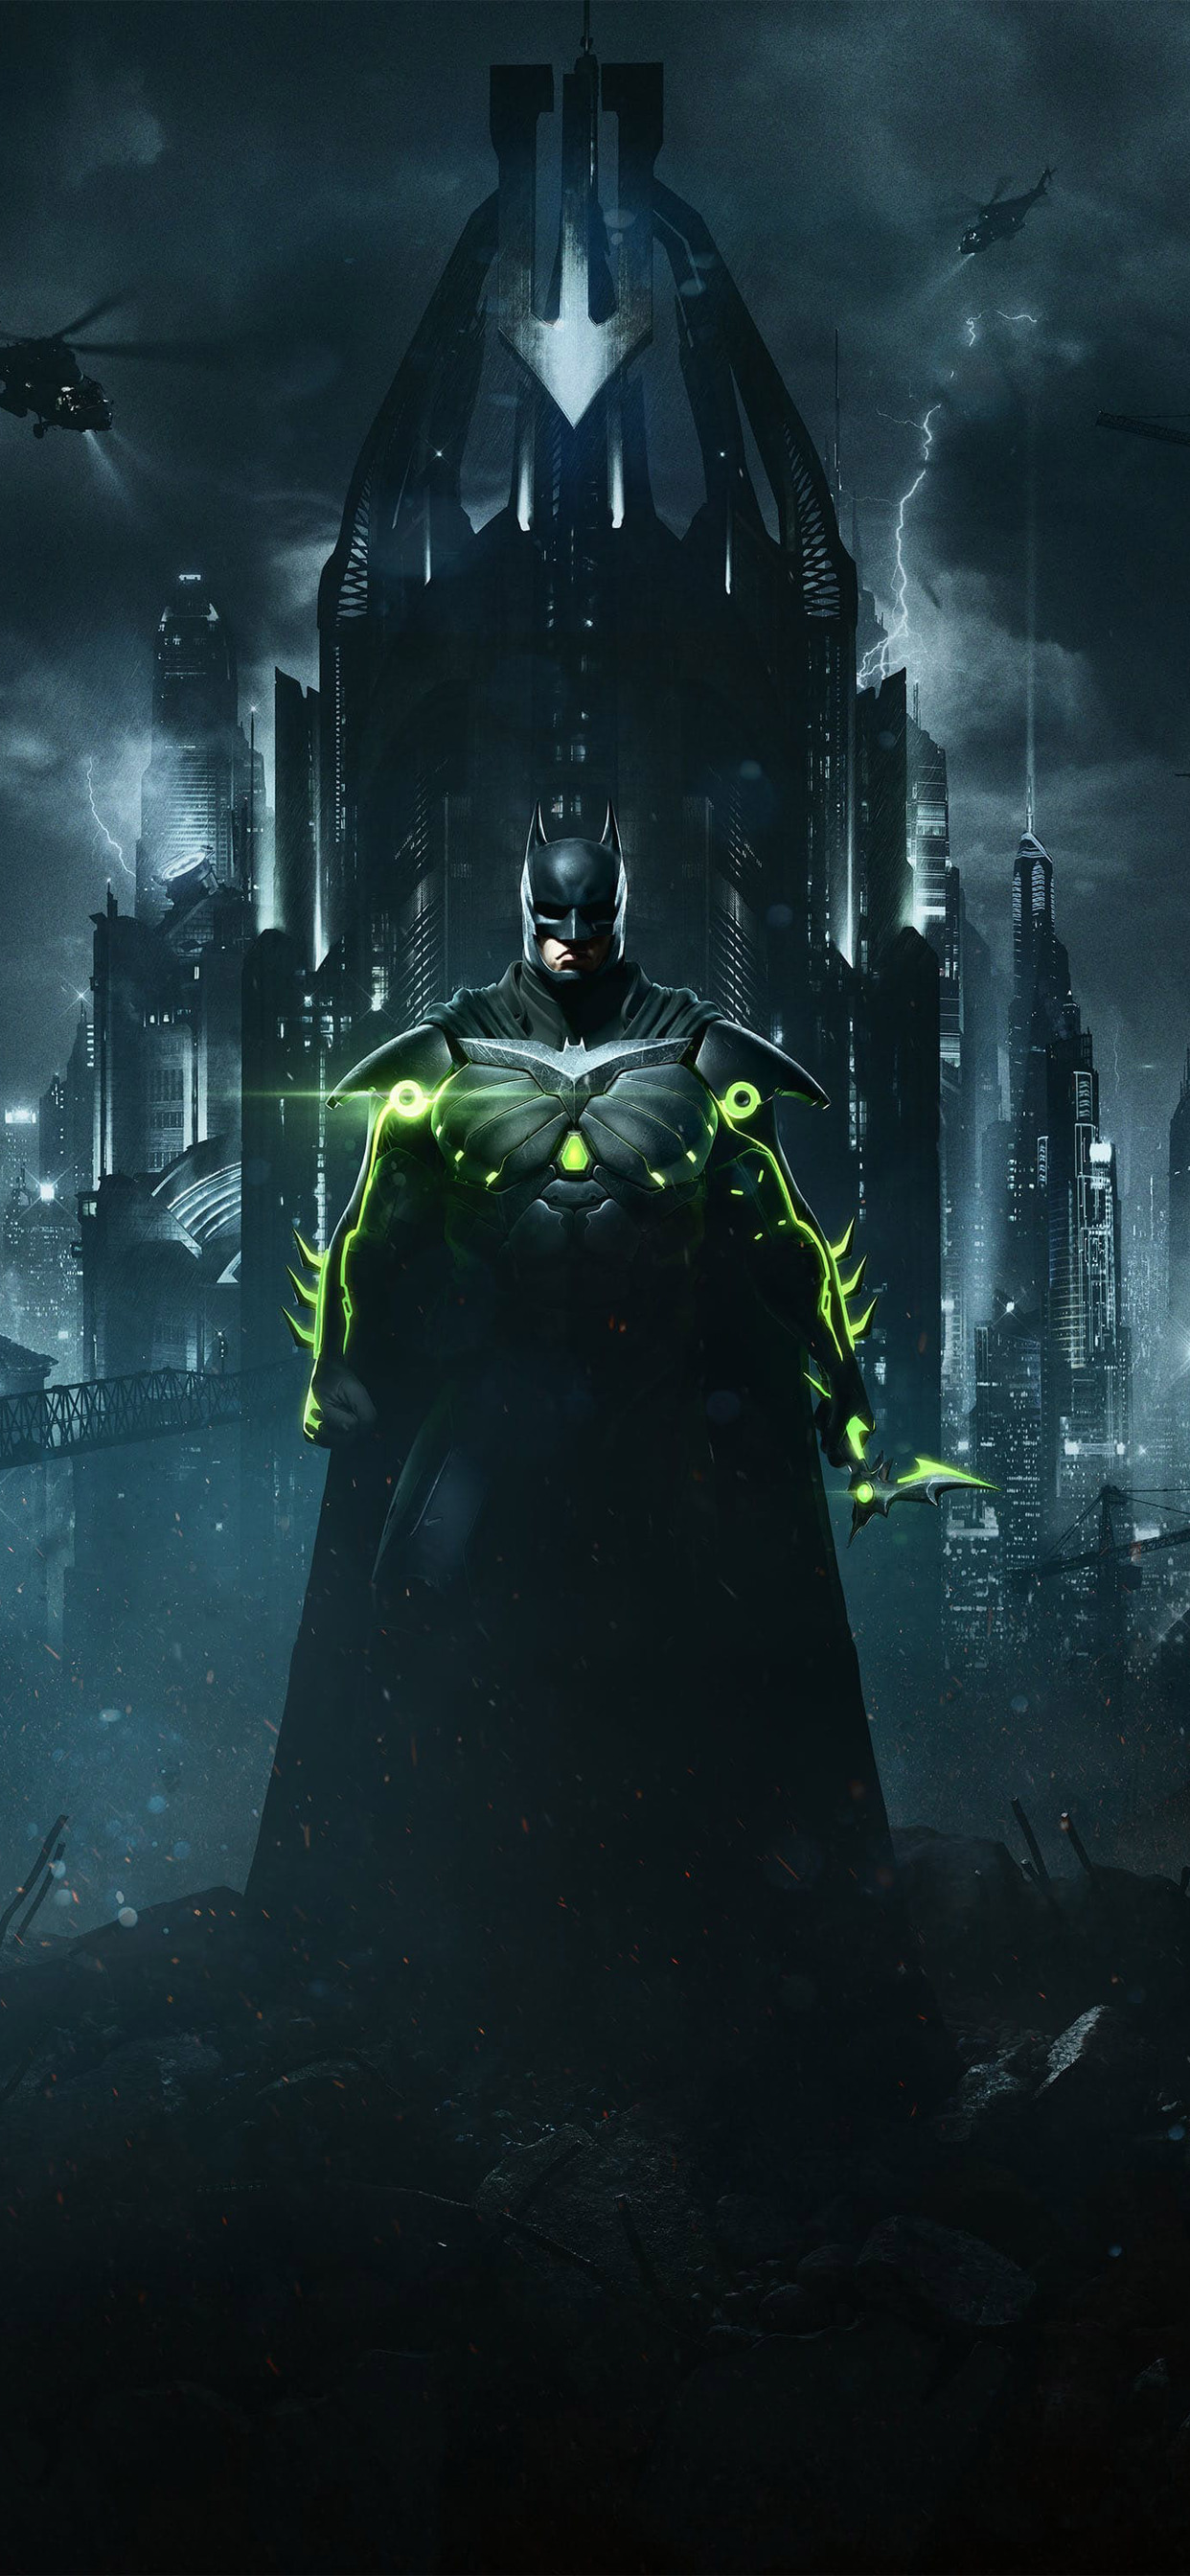 1242x2688 Batman In Injustice 2 Iphone Xs Max Hd 4k